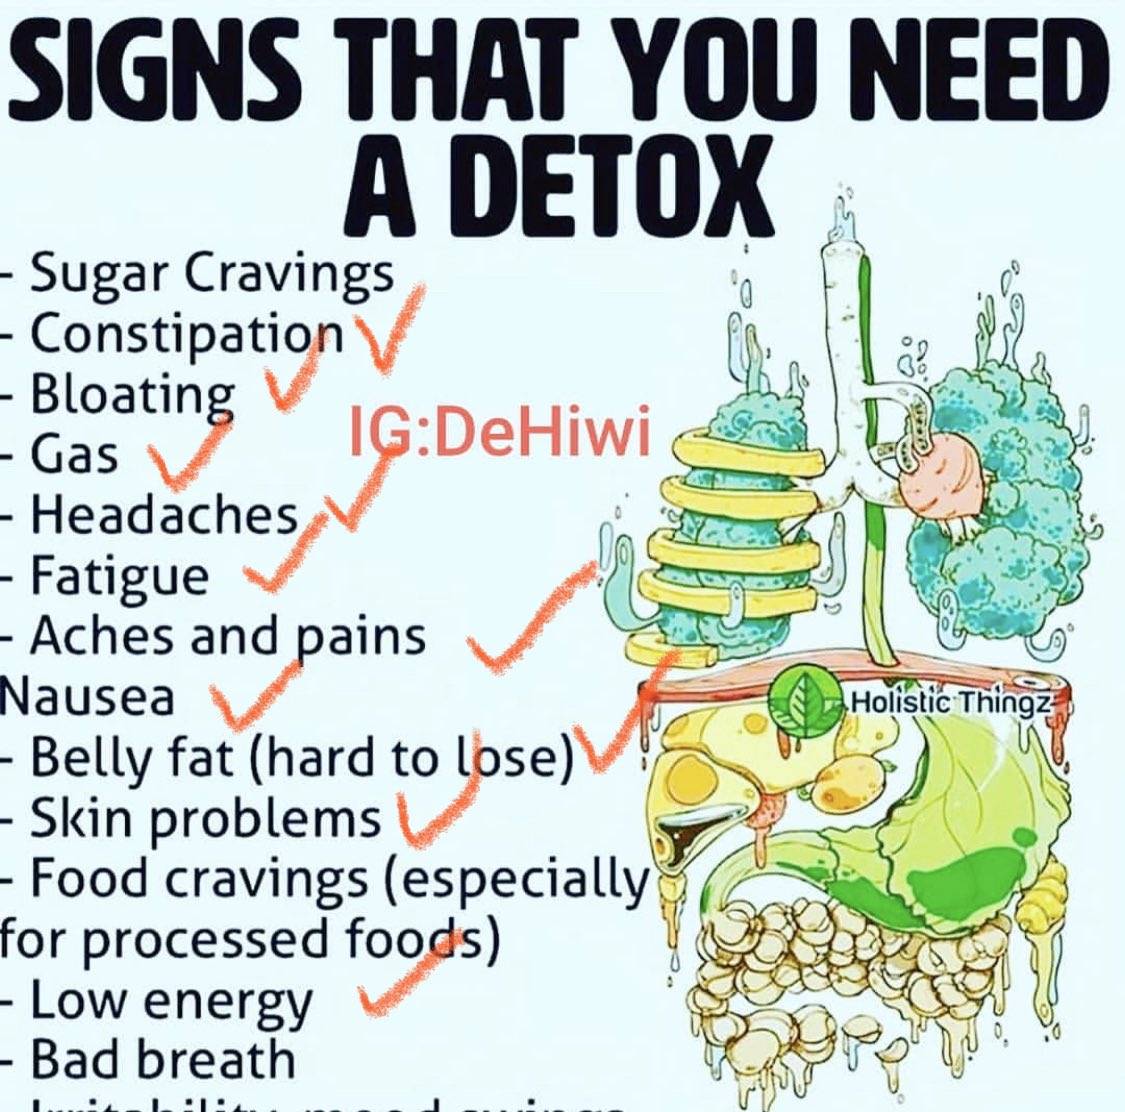 10 out of 13. I'll tell you what kind of #detox I need: BIRTH. #Thisis39weeks